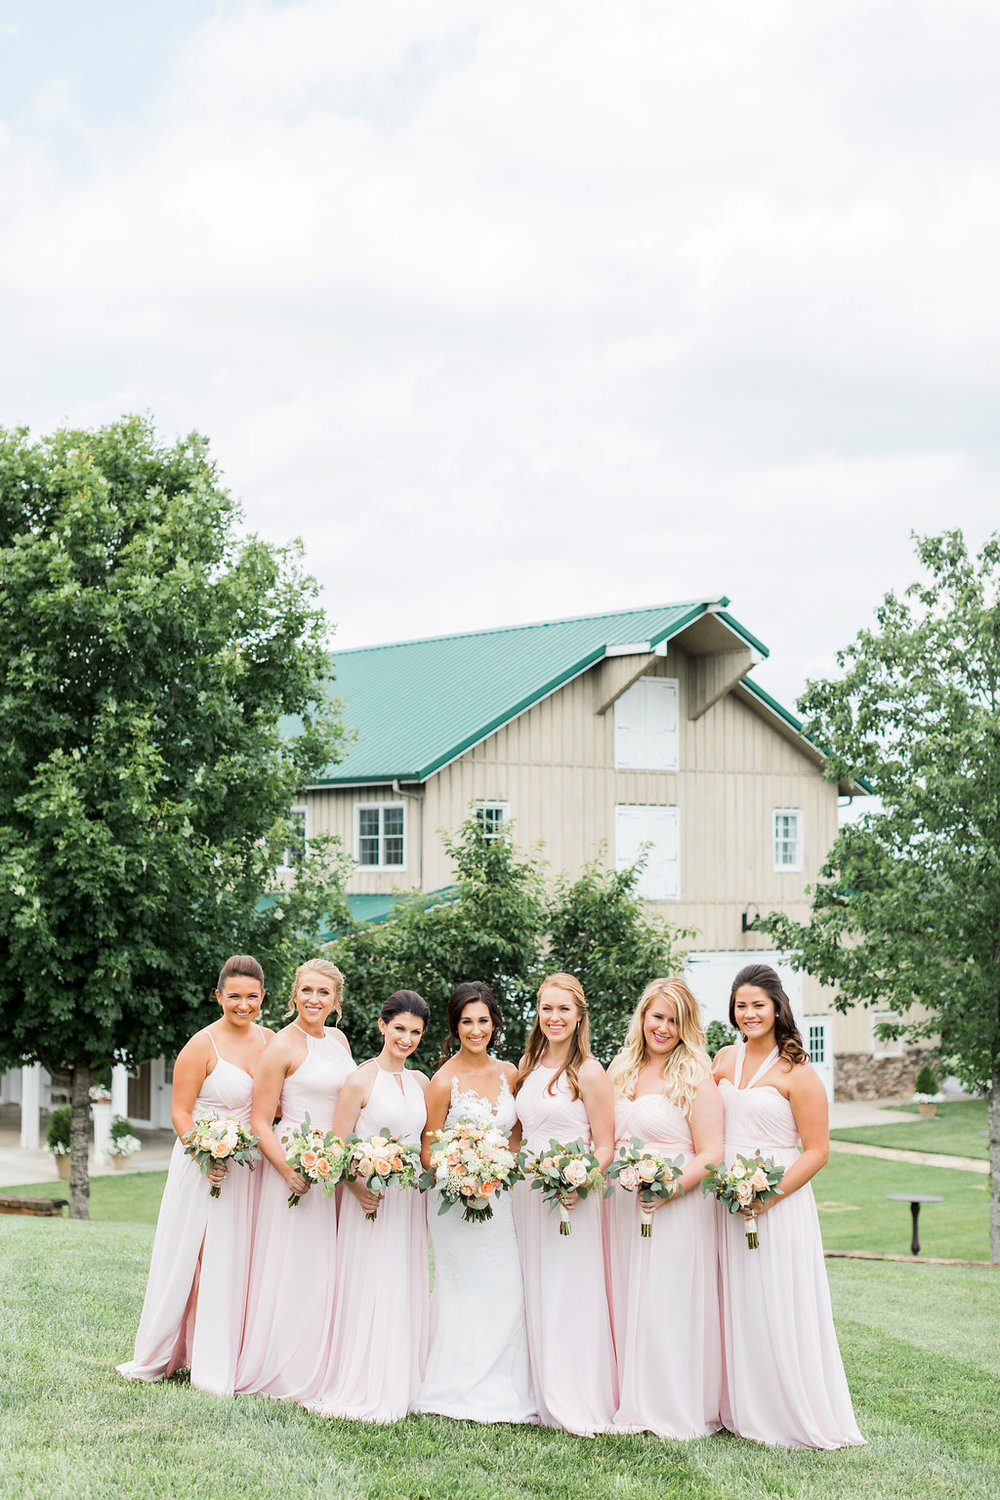 Northern Georgia Wedding Venue - Walnut Hill Farm Wedding - Simplistic Wedding Details